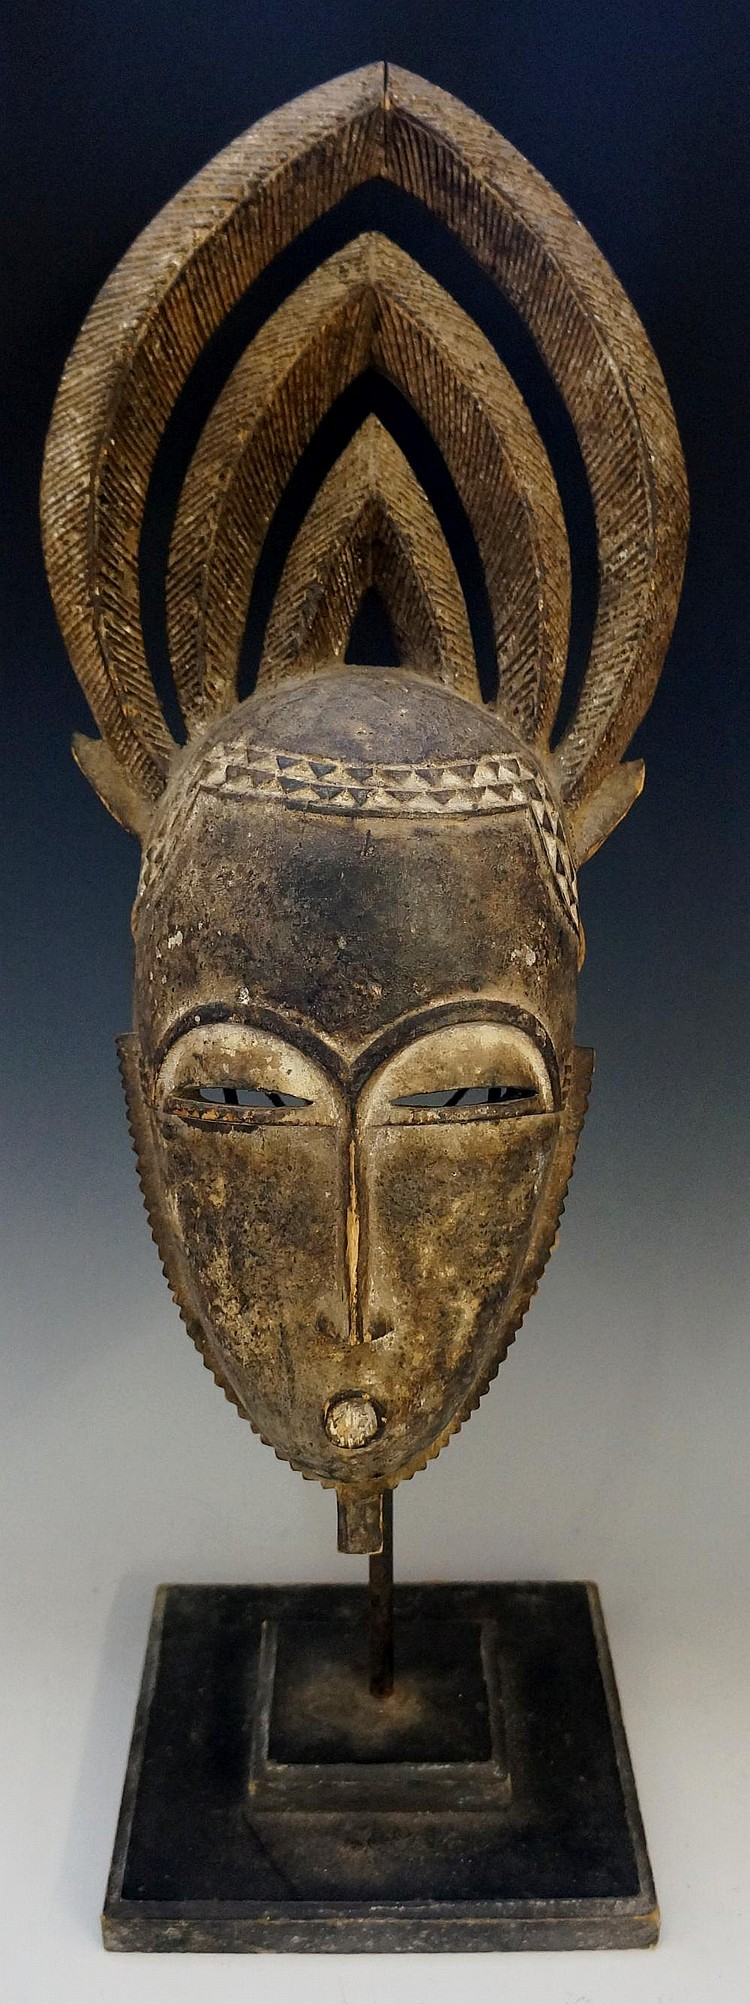 An African tribal mask with ornate carved headdress, mounted on a stand, 56